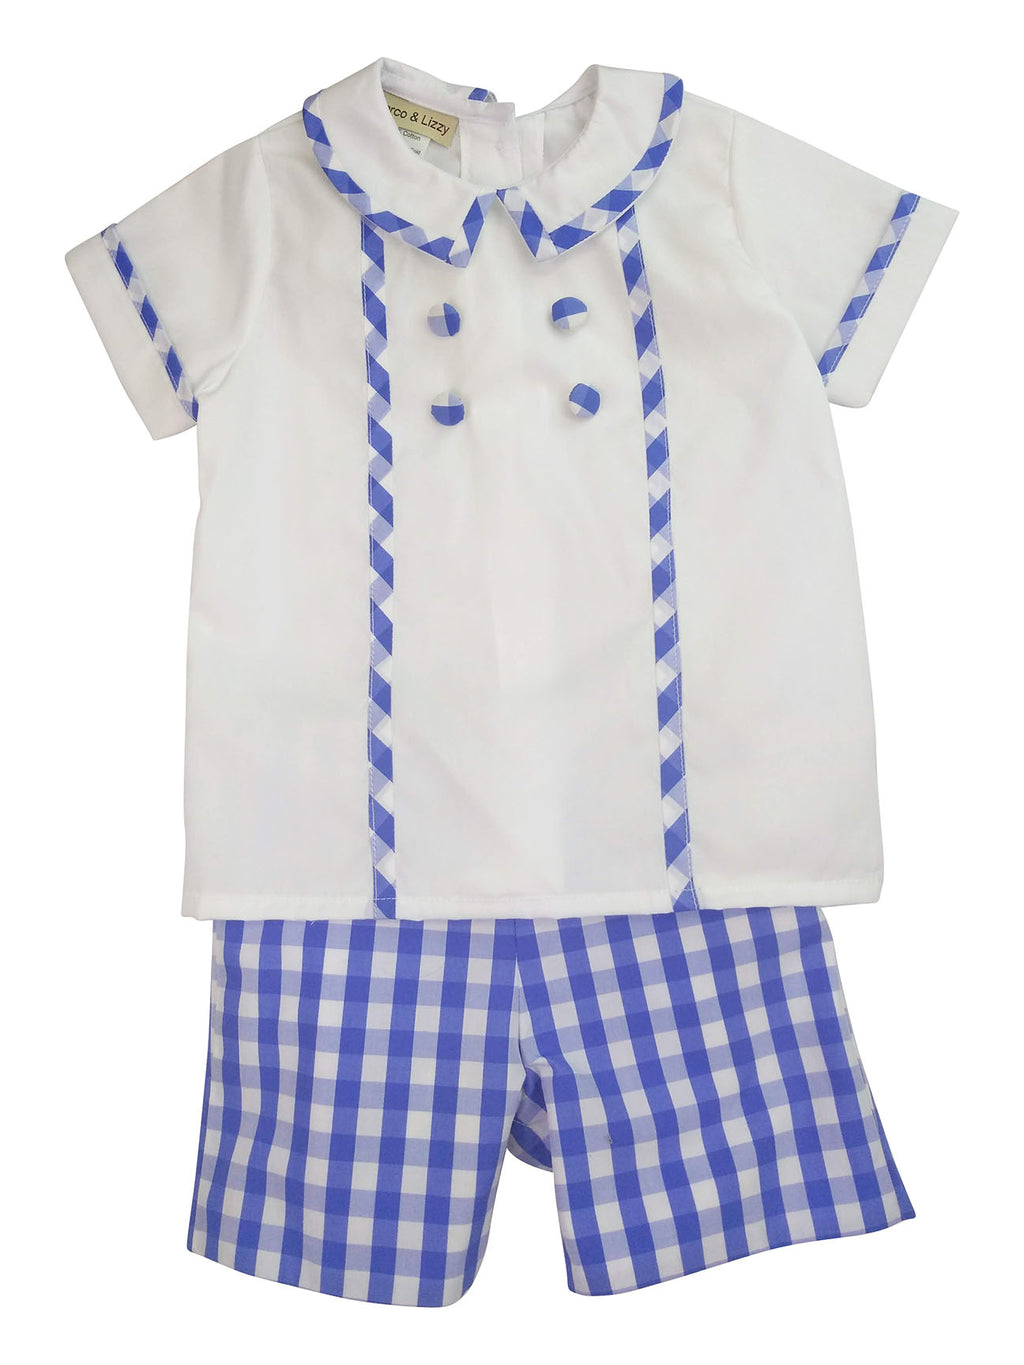 Andy Boy's Short Set - Little Threads Inc. Children's Clothing